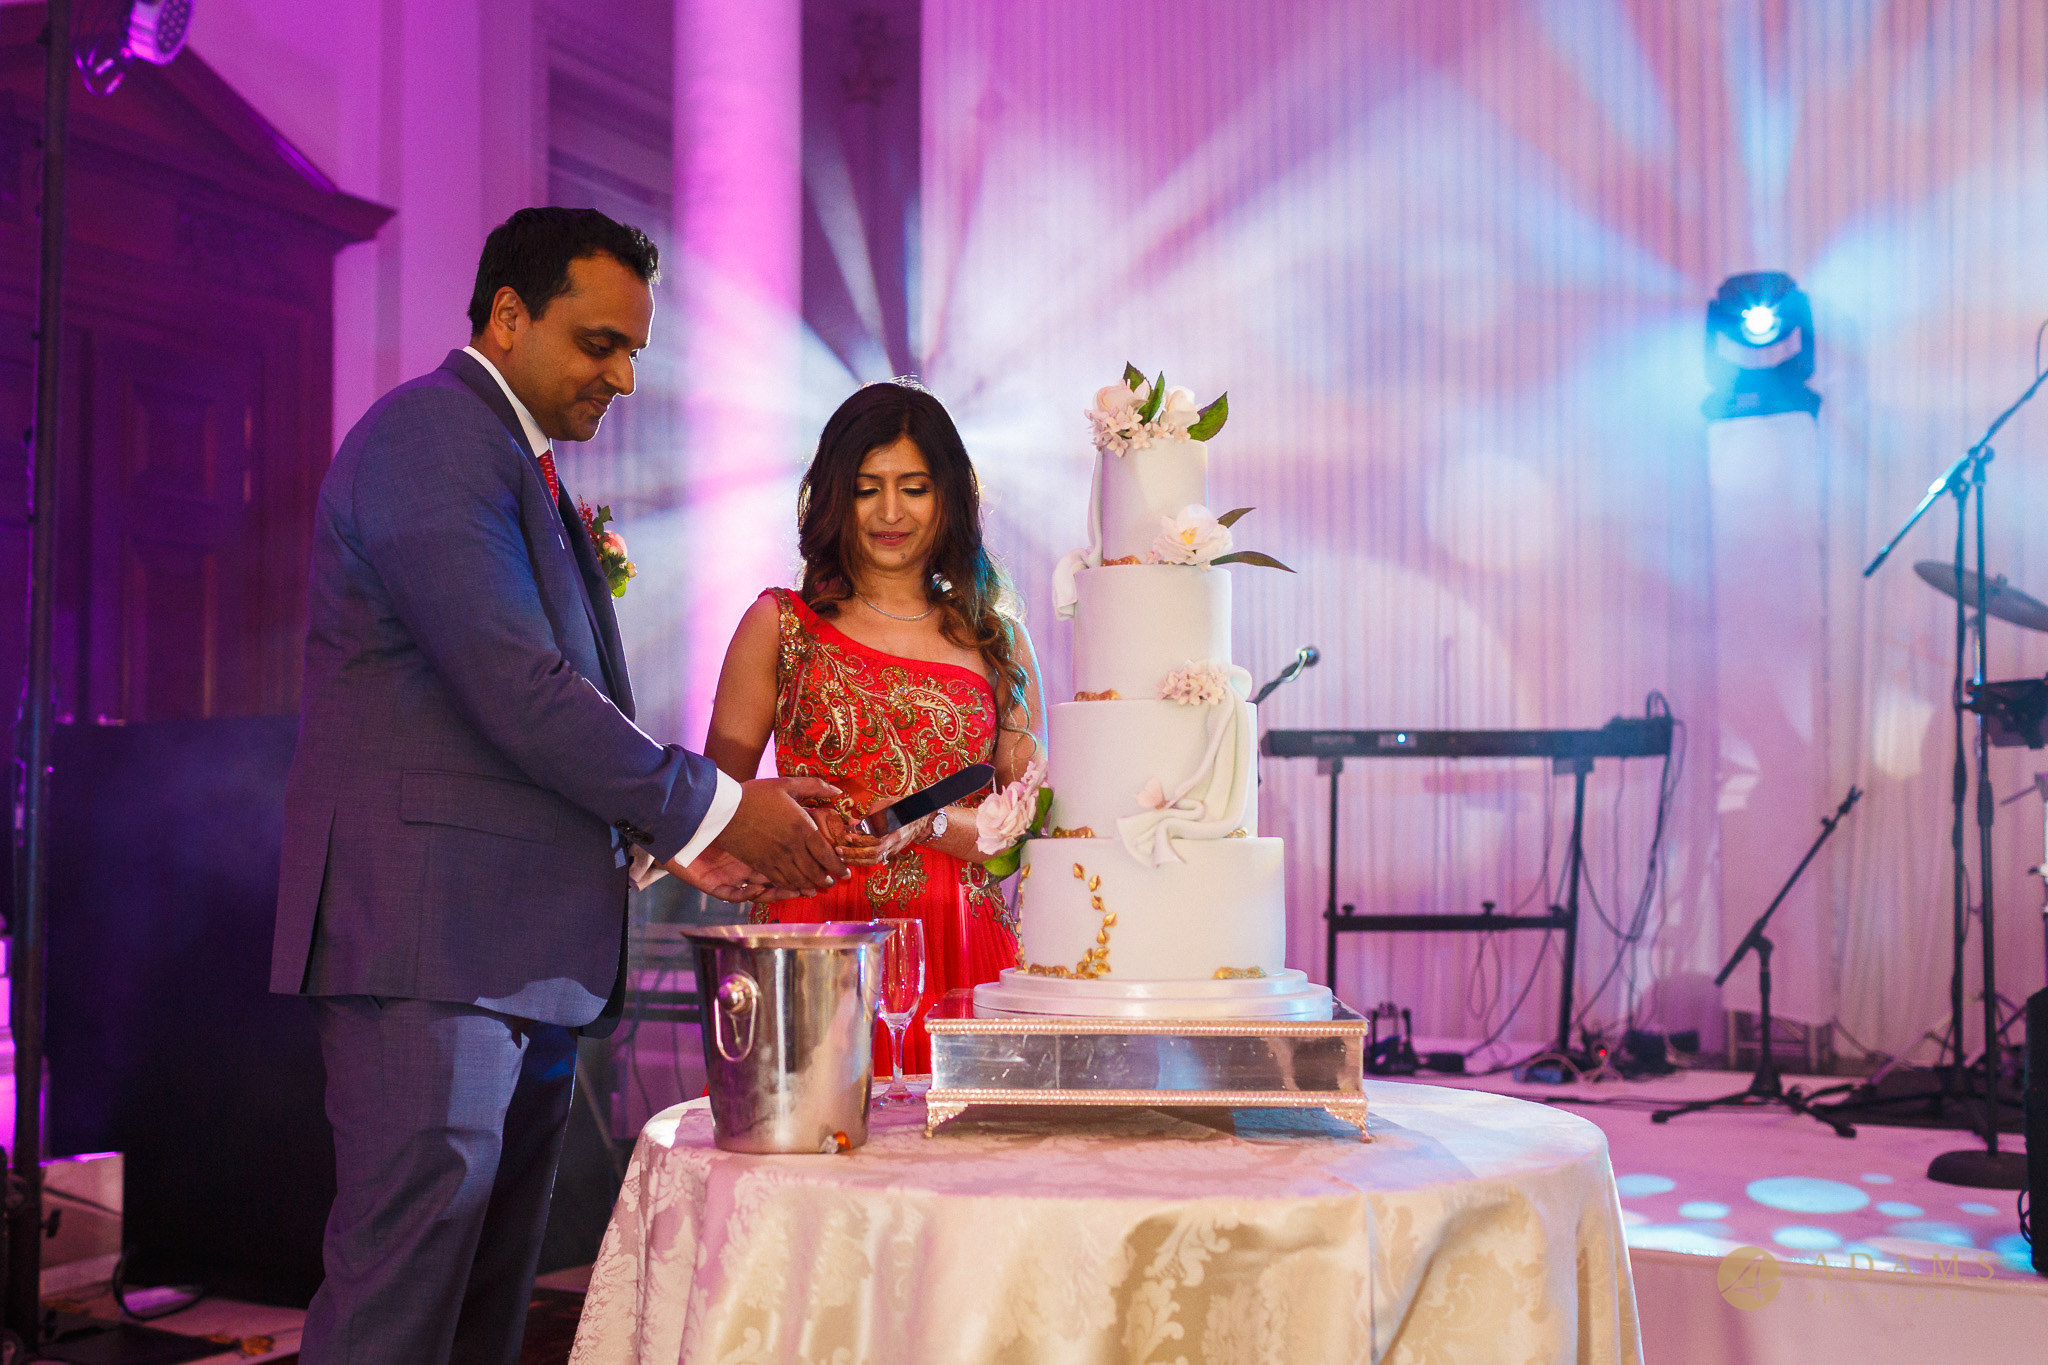 The Couple are cutting the cake at their wedding in Langham Hotel in London